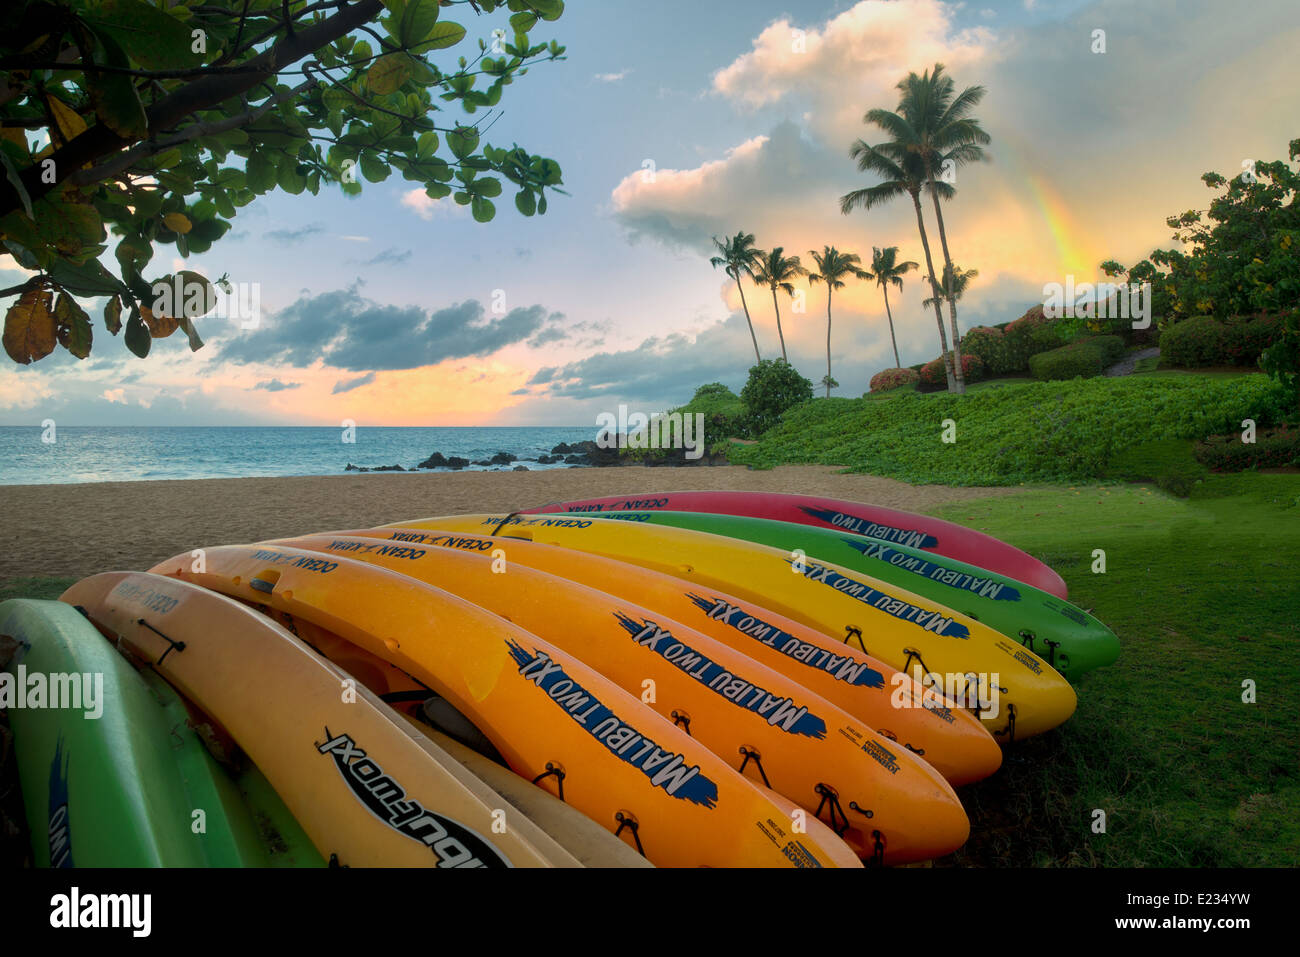 Kayaks sur la plage avec arc-en-ciel. Maui, Hawaii Photo Stock